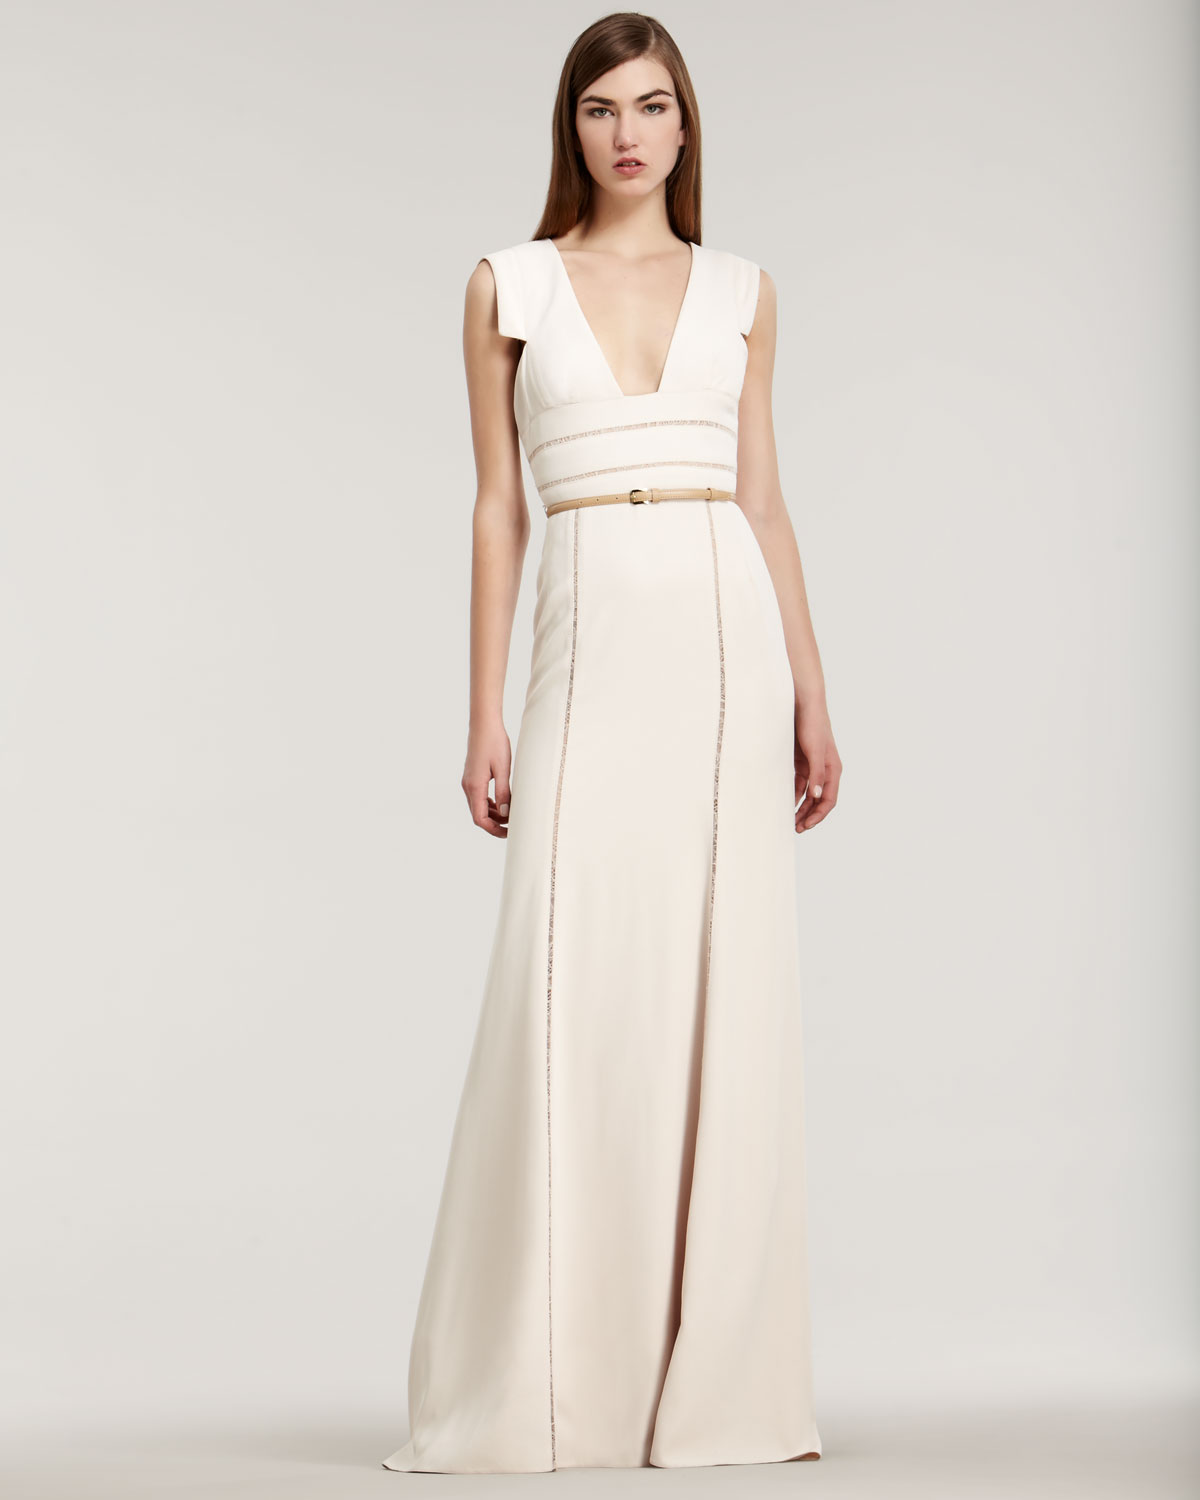 ab9aabc7608 Elie Saab Stretch Crepe Capsleeve Gown in White - Lyst